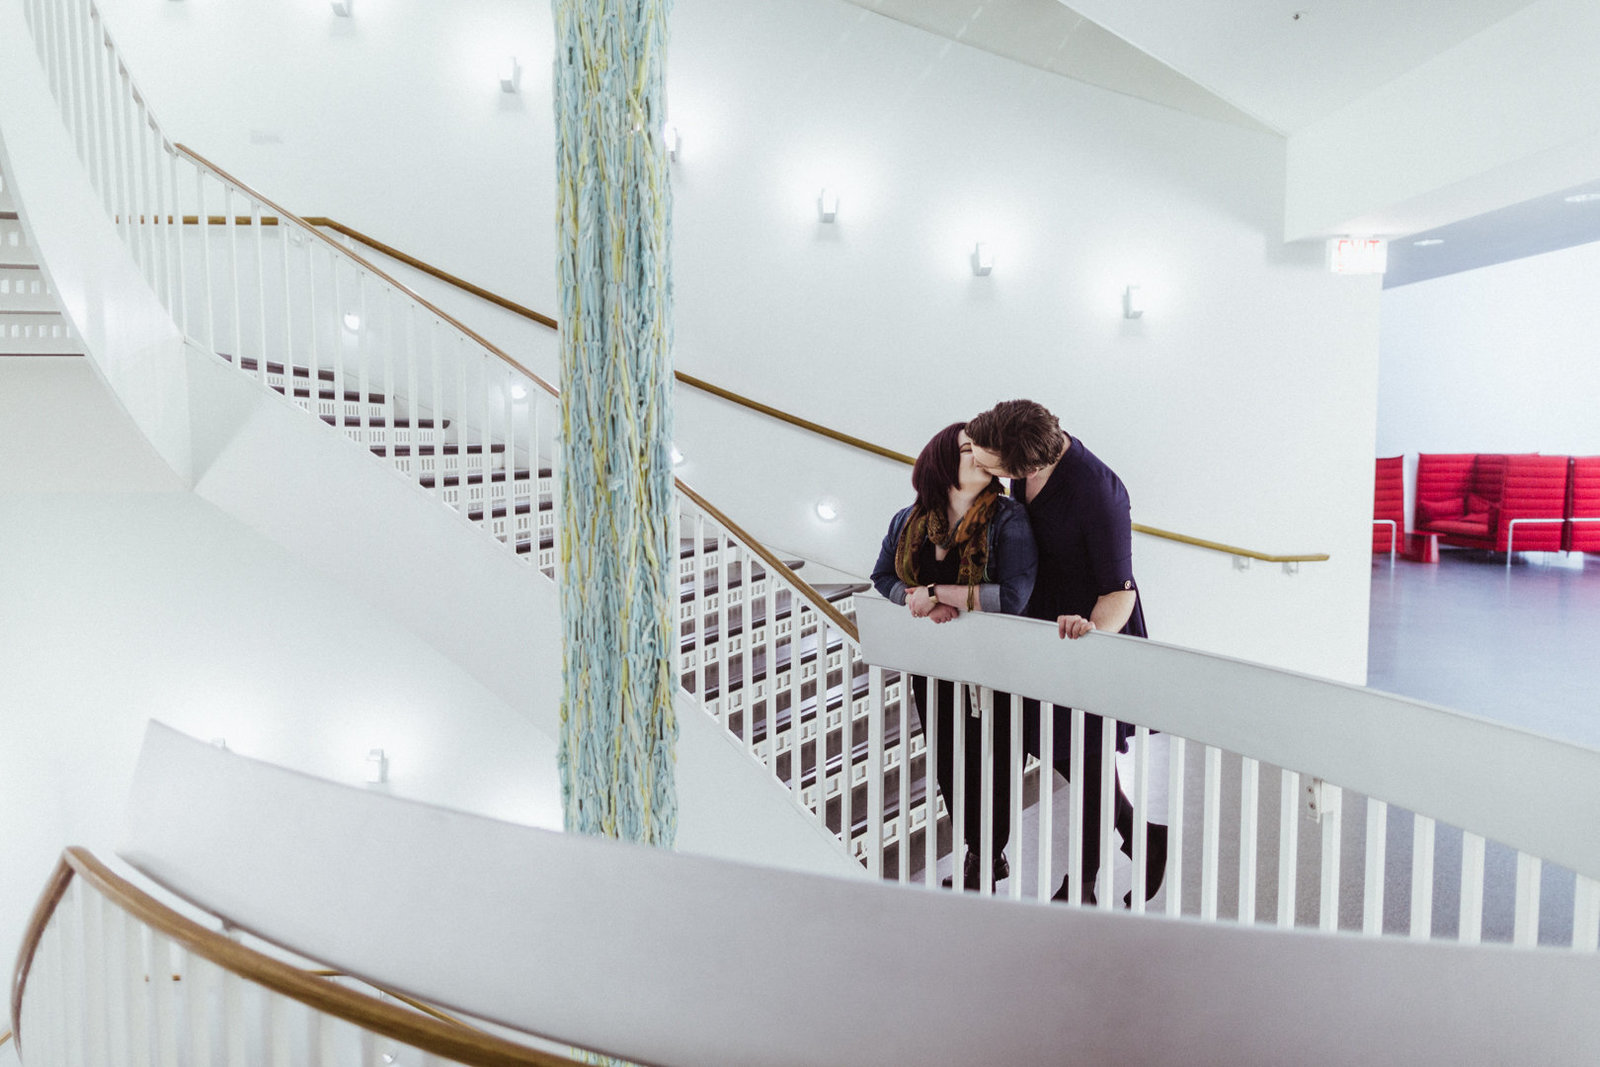 engagement-photos-chicago-museum-contemporary-art-ez-powers-4